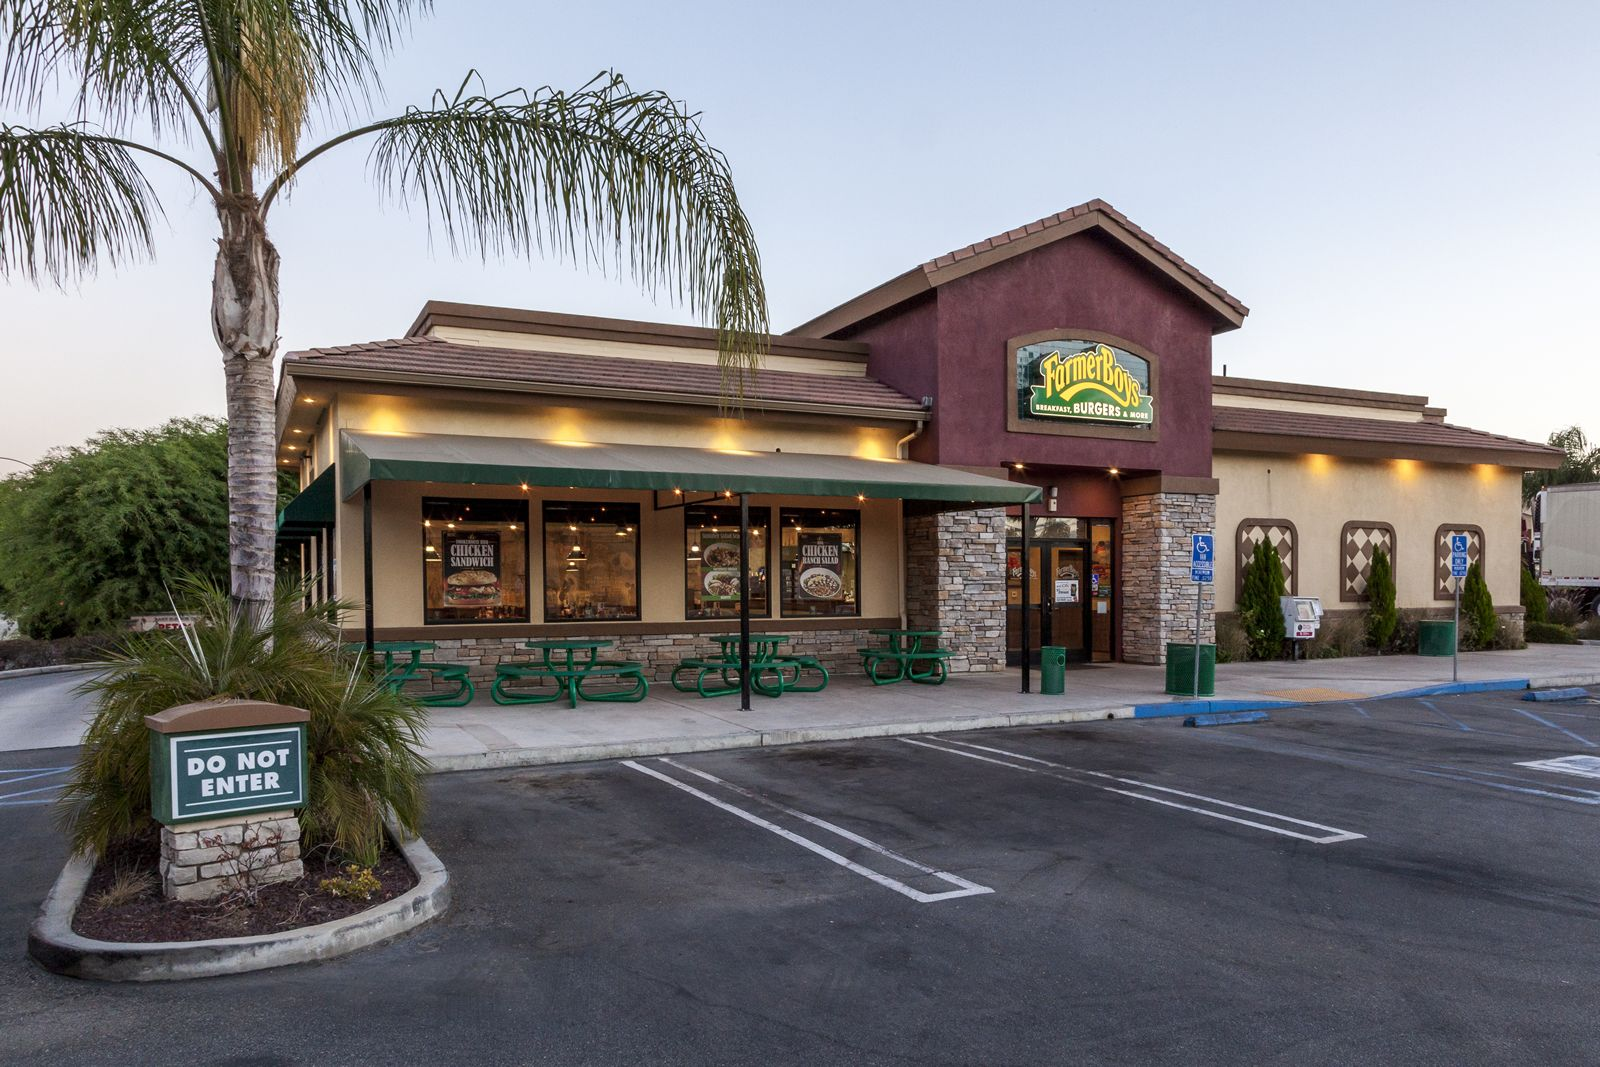 Farmer Boys is making highly anticipated updates to its Very Important Farmer (VIF) app and loyalty rewards program on Monday, August 17. Existing and new users will enjoy a revamped app interface that is easier to navigate, as well as the ability to earn rewards faster and more flexibility to choose rewards.